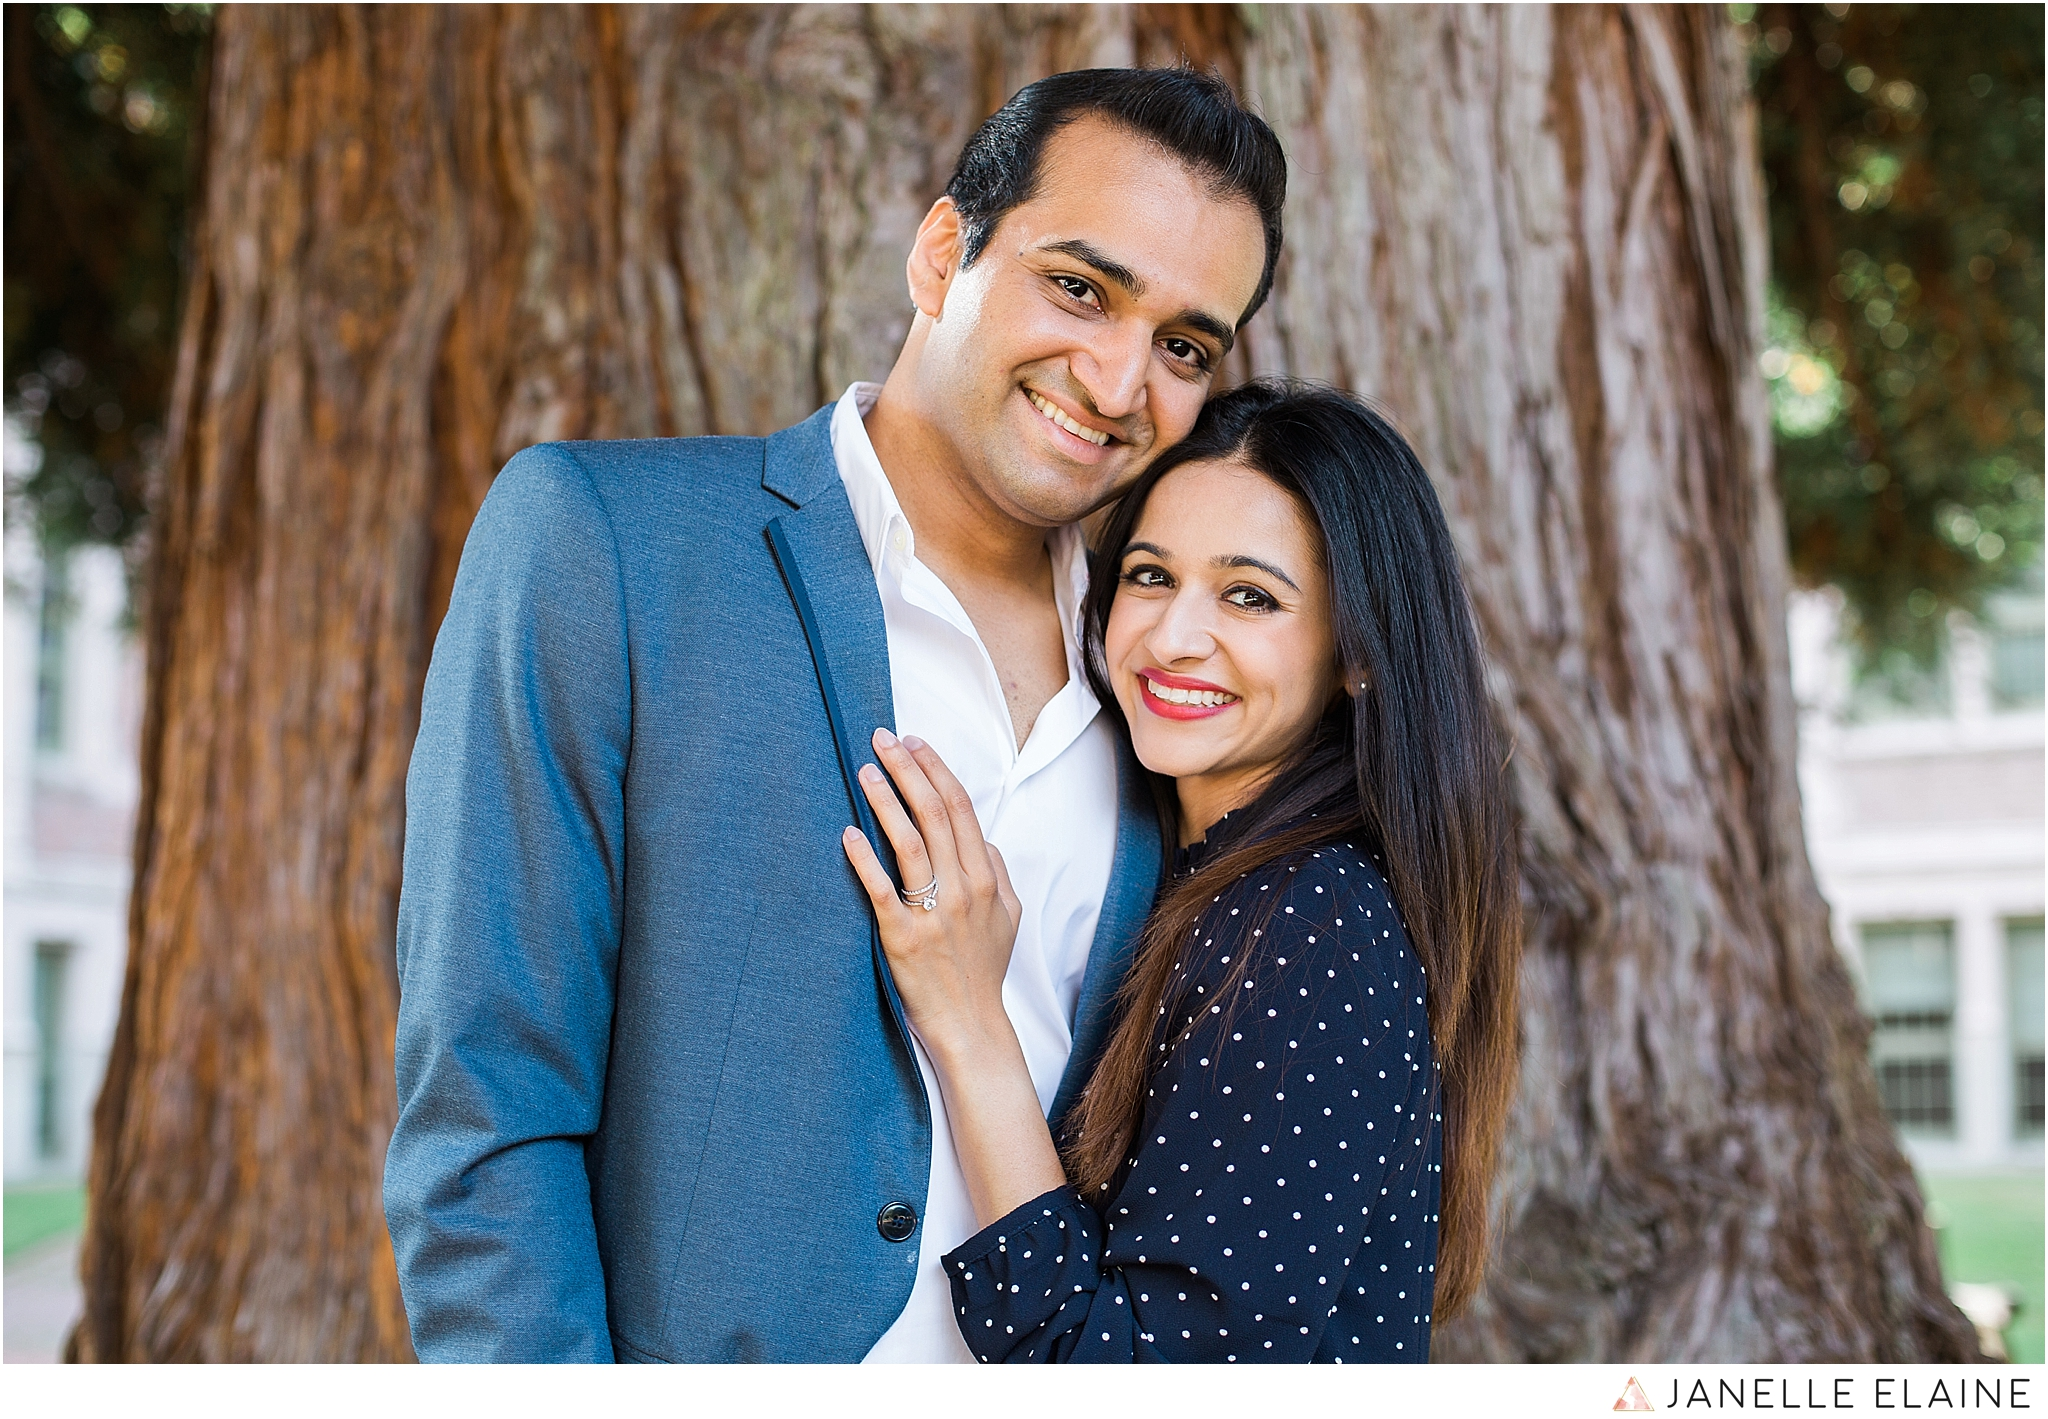 janelle elaine photography-zain and umema-seattle-uw-red square-engagement-photographer-11.jpg